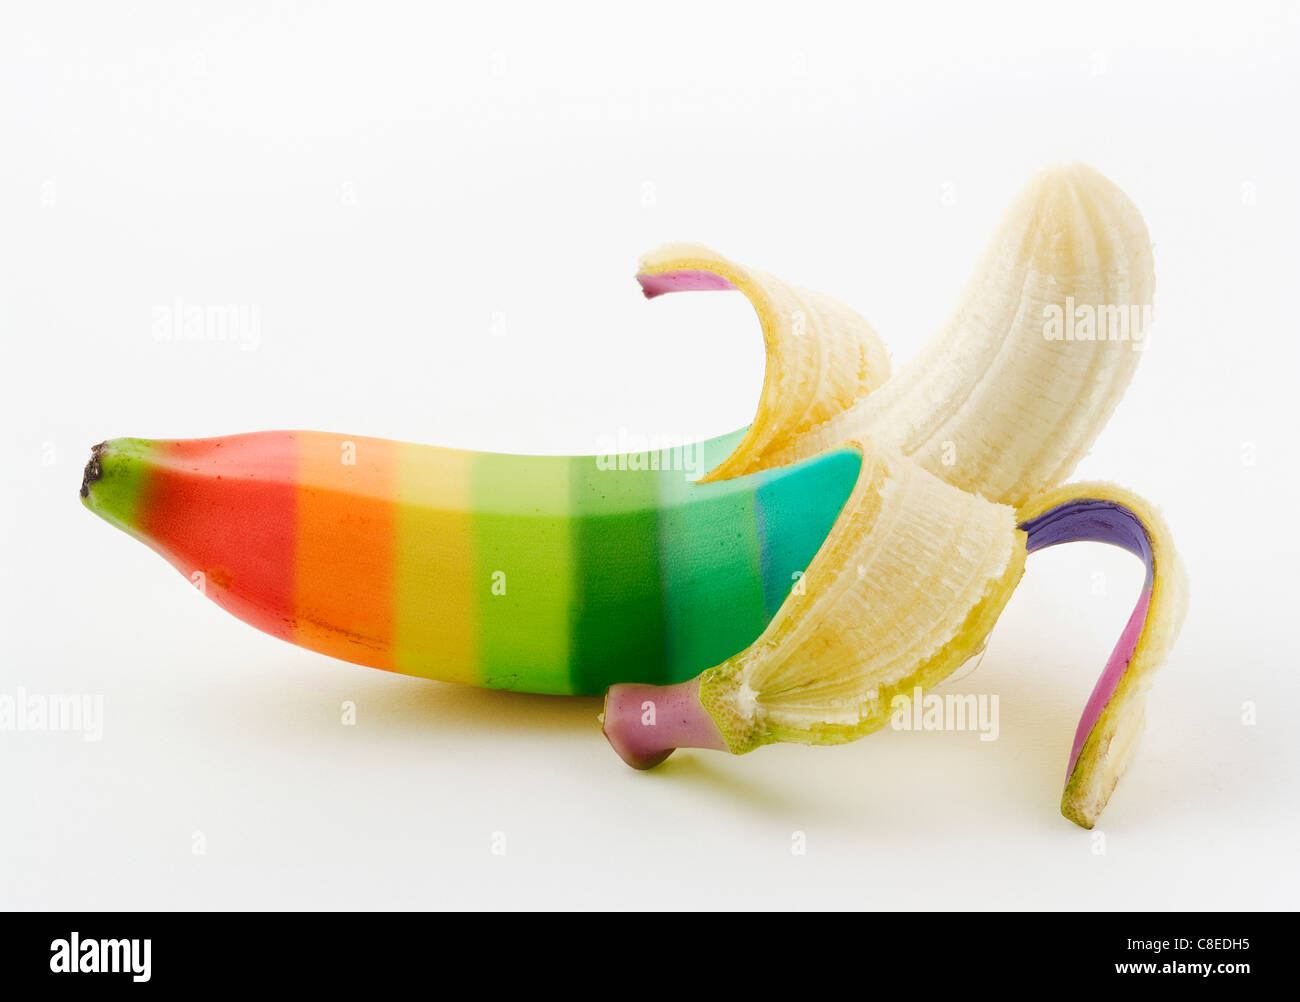 Banana multicolore Foto Stock